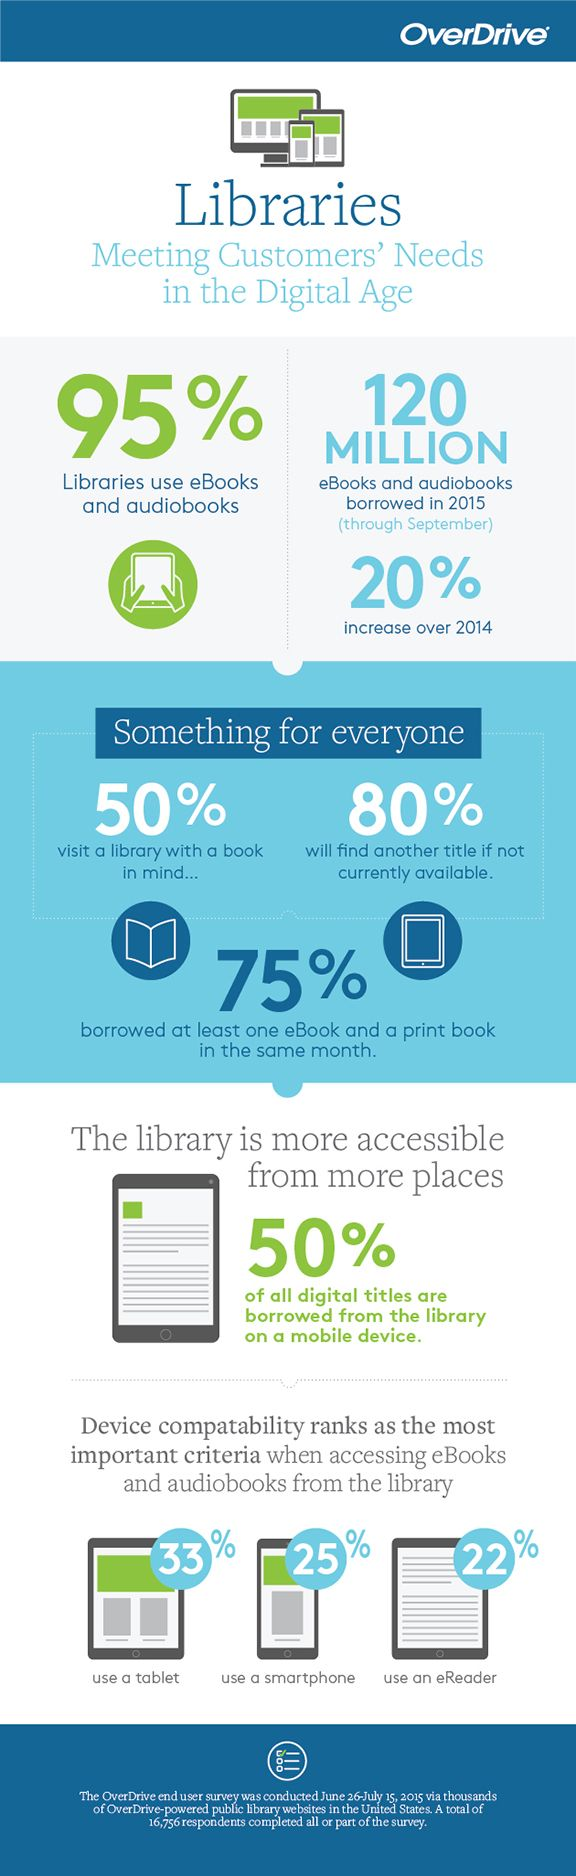 Public Libraries Evolving To Meet Readers' Needs In The Digital Age